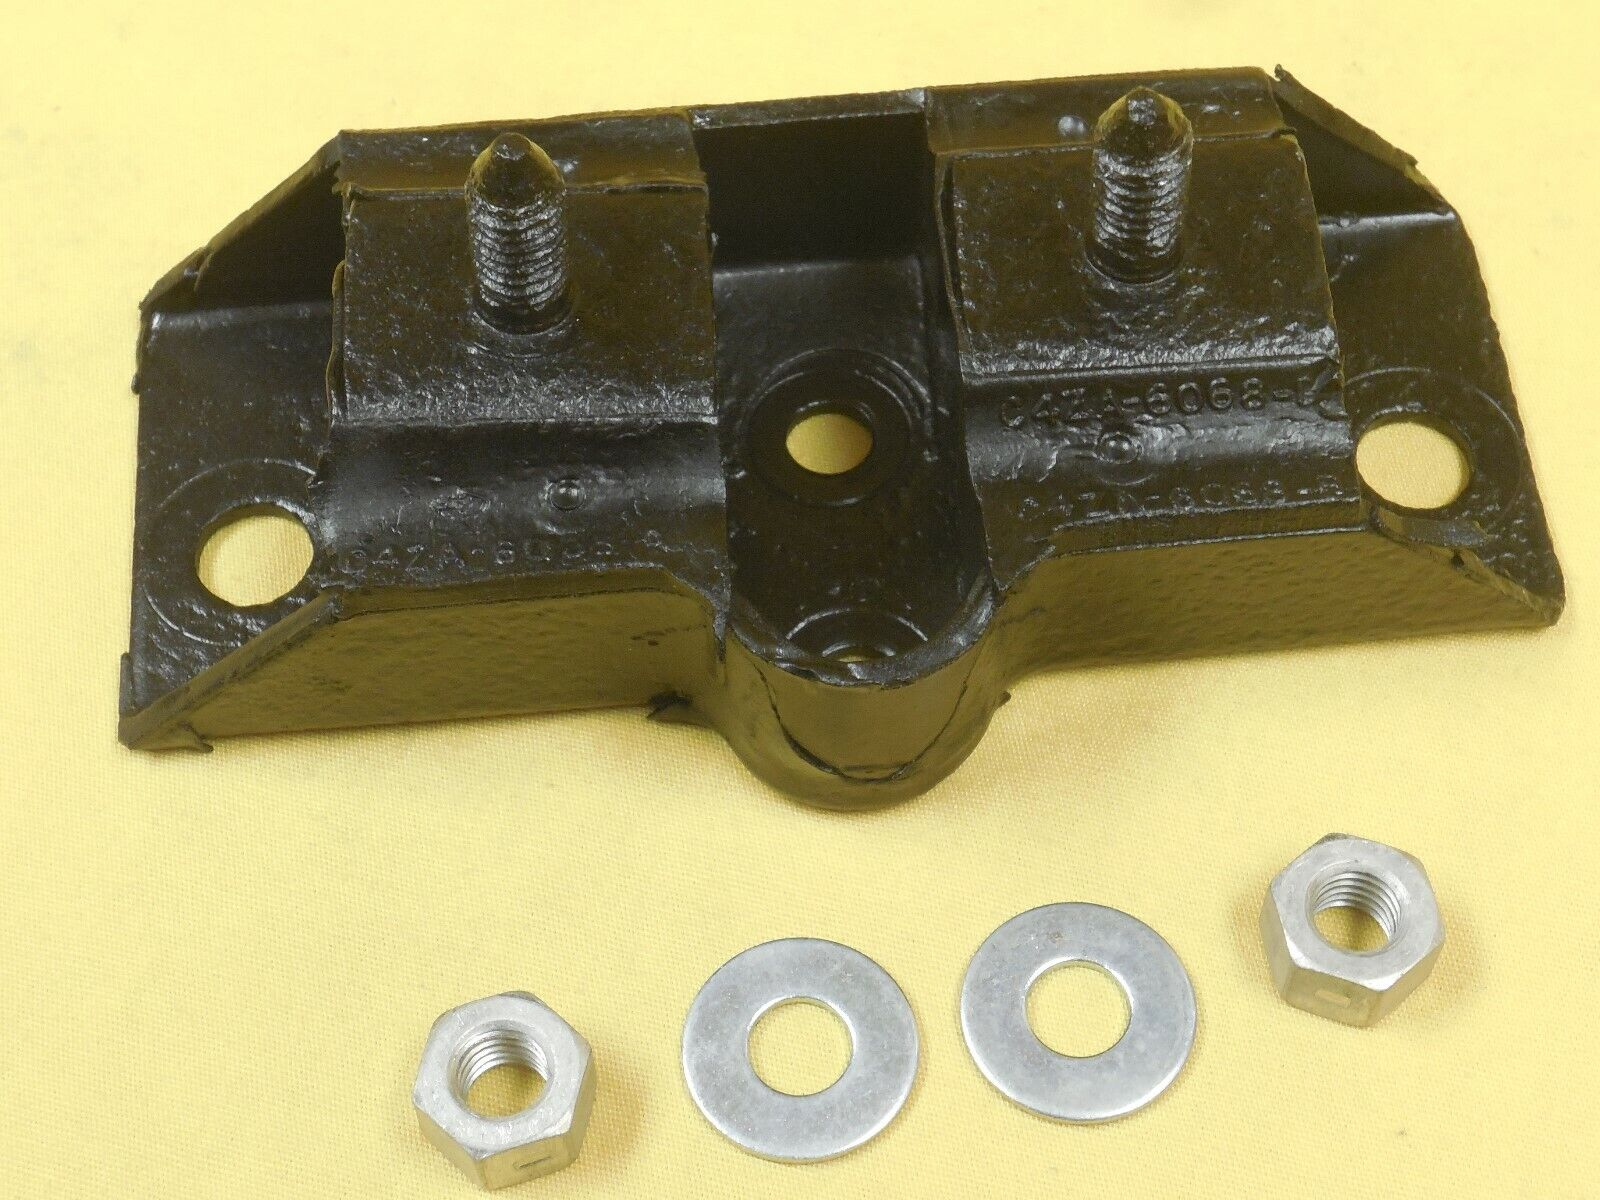 64-69,Shelby,Mustang,Cougar,Fairlane,Falcon,Transmission Mount